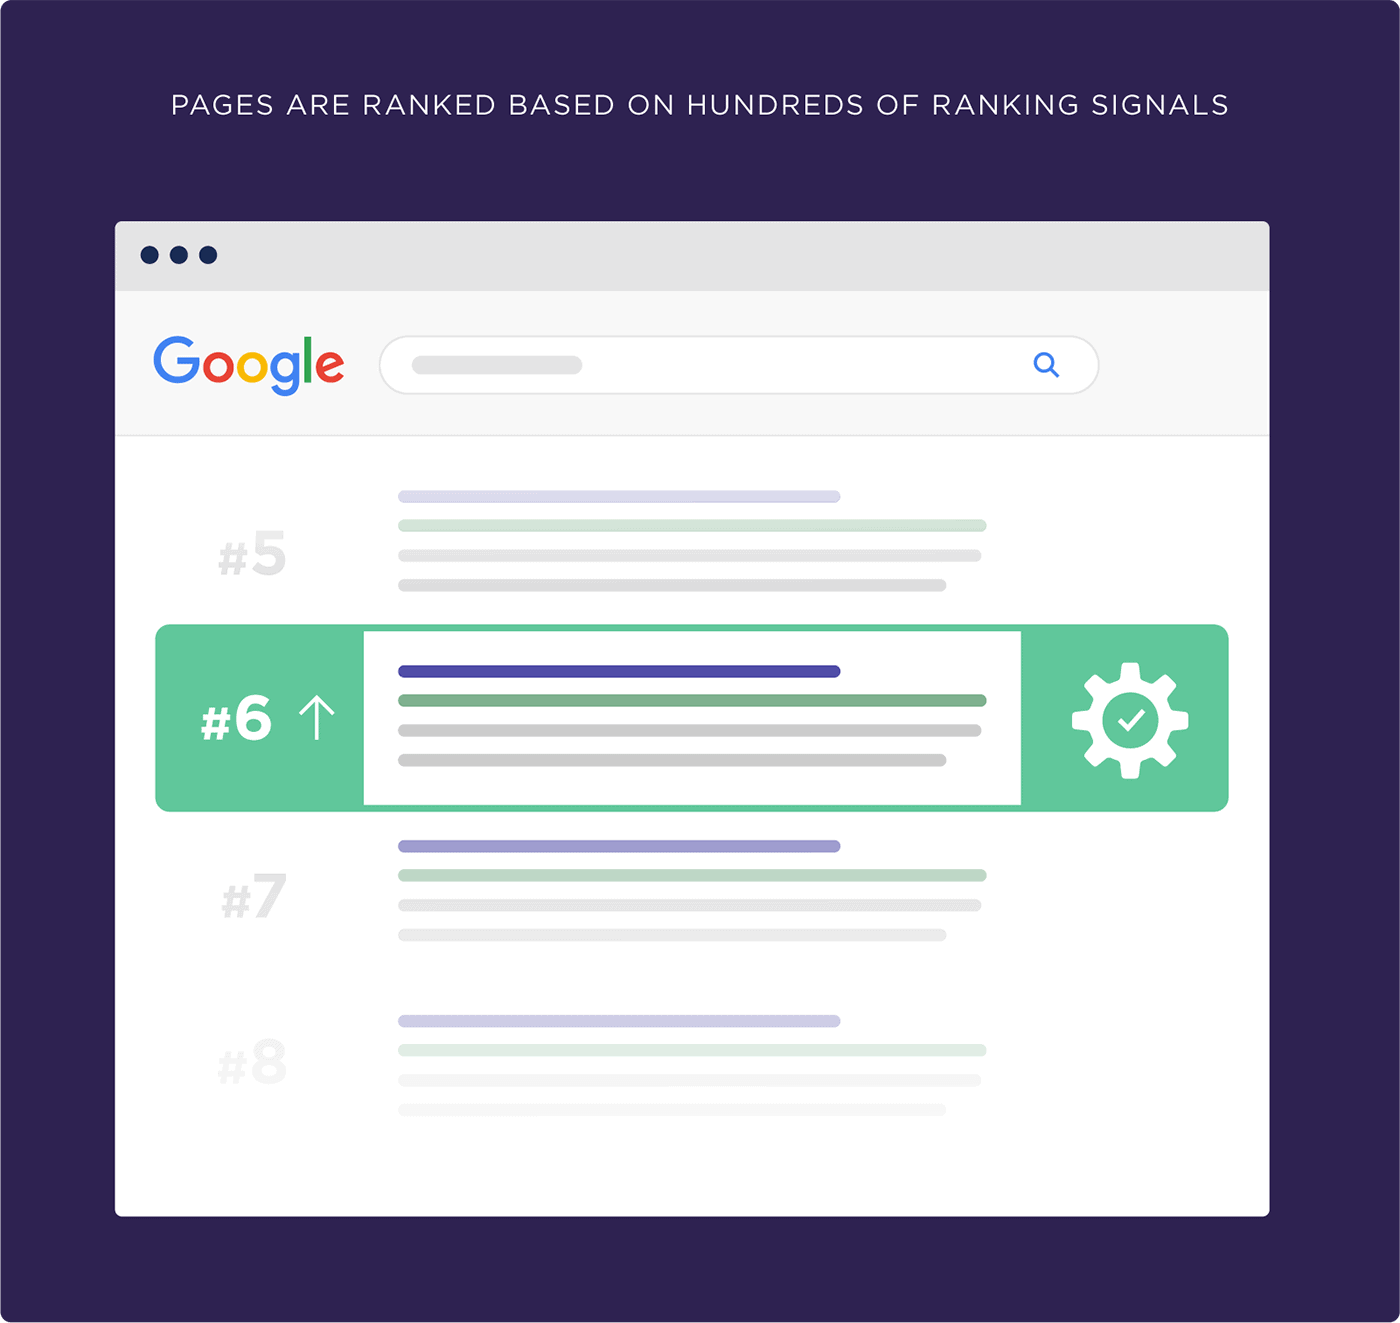 Pages are ranked based on hundreds of ranking signals